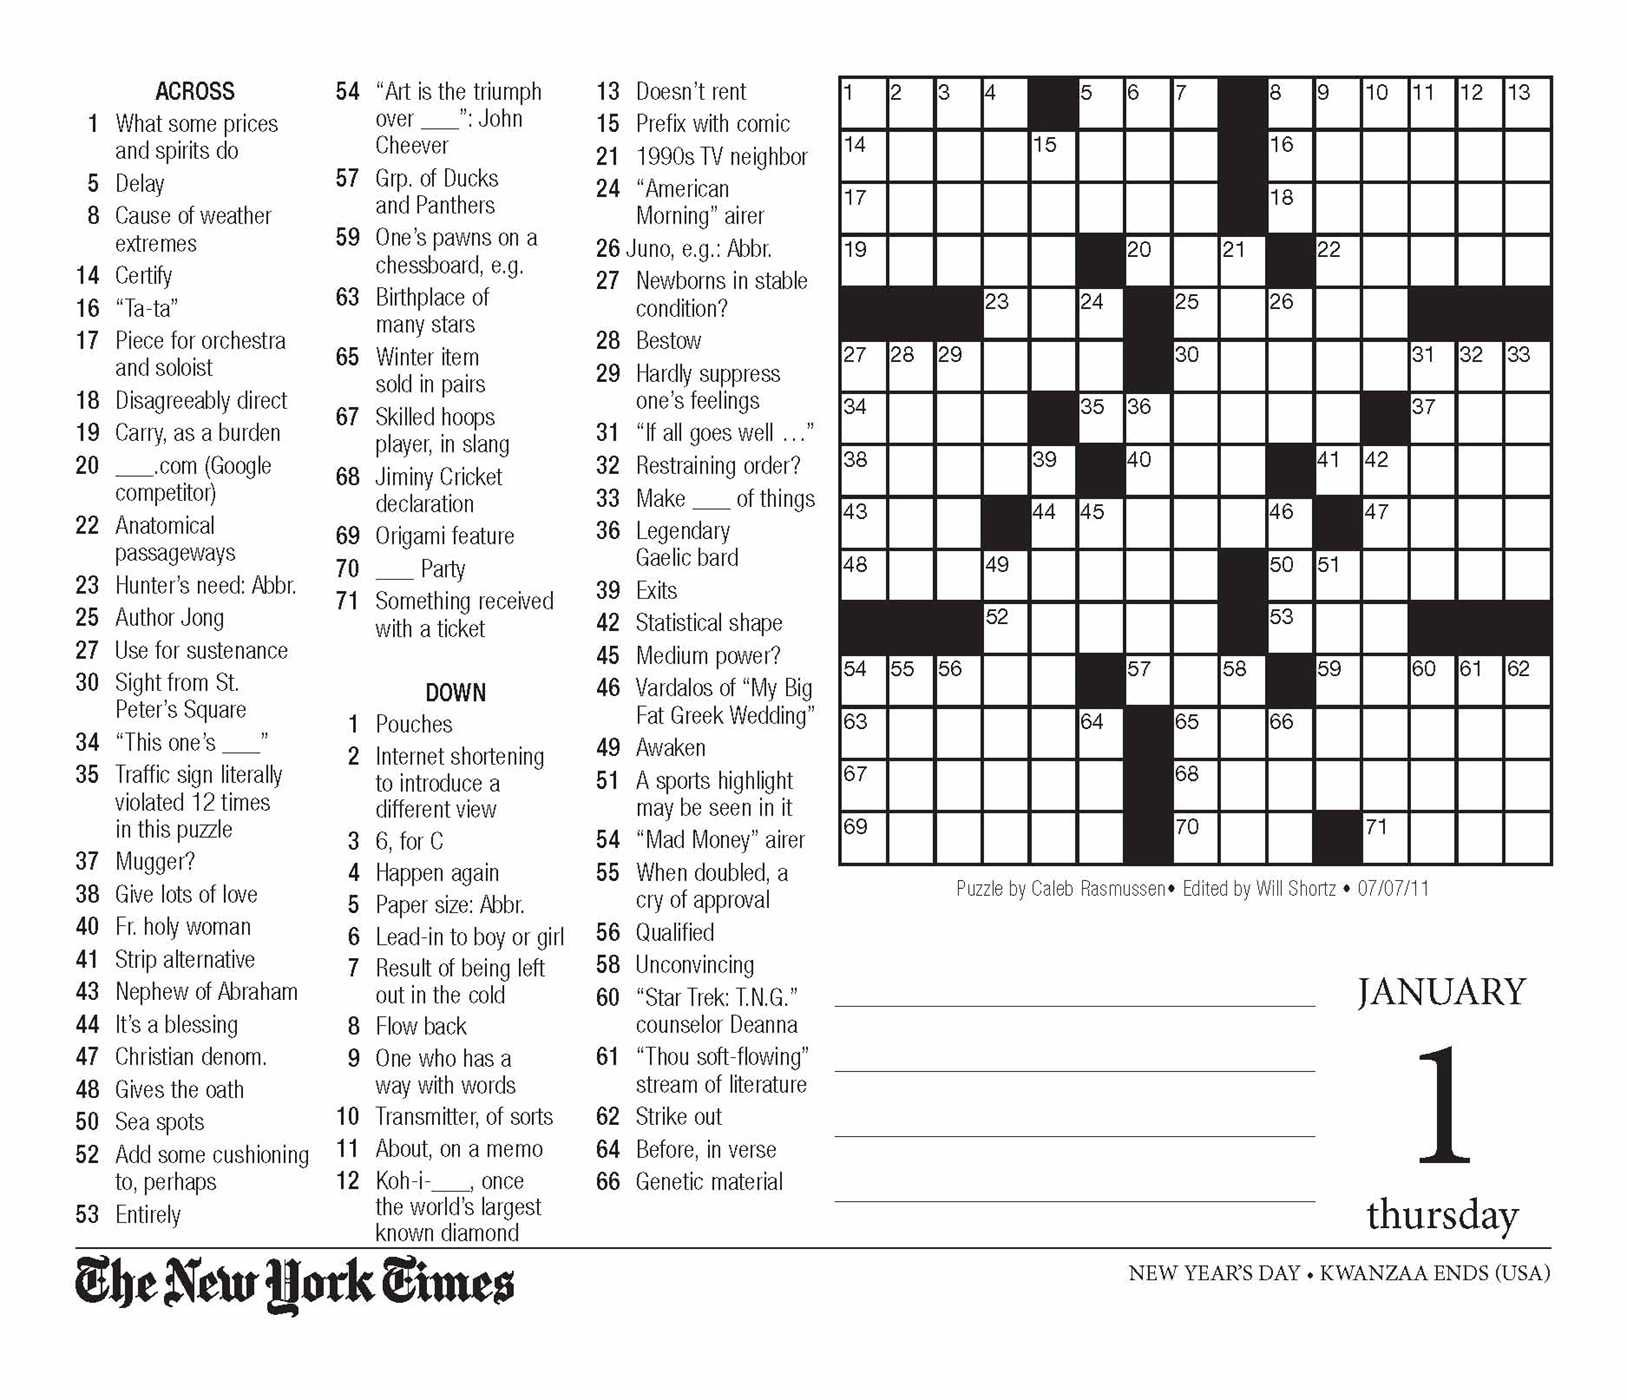 image about Printable Ny Times Crossword Puzzles identified as The Fresh new York Moments Crossword Puzzles 2015 Working day-towards-Working day